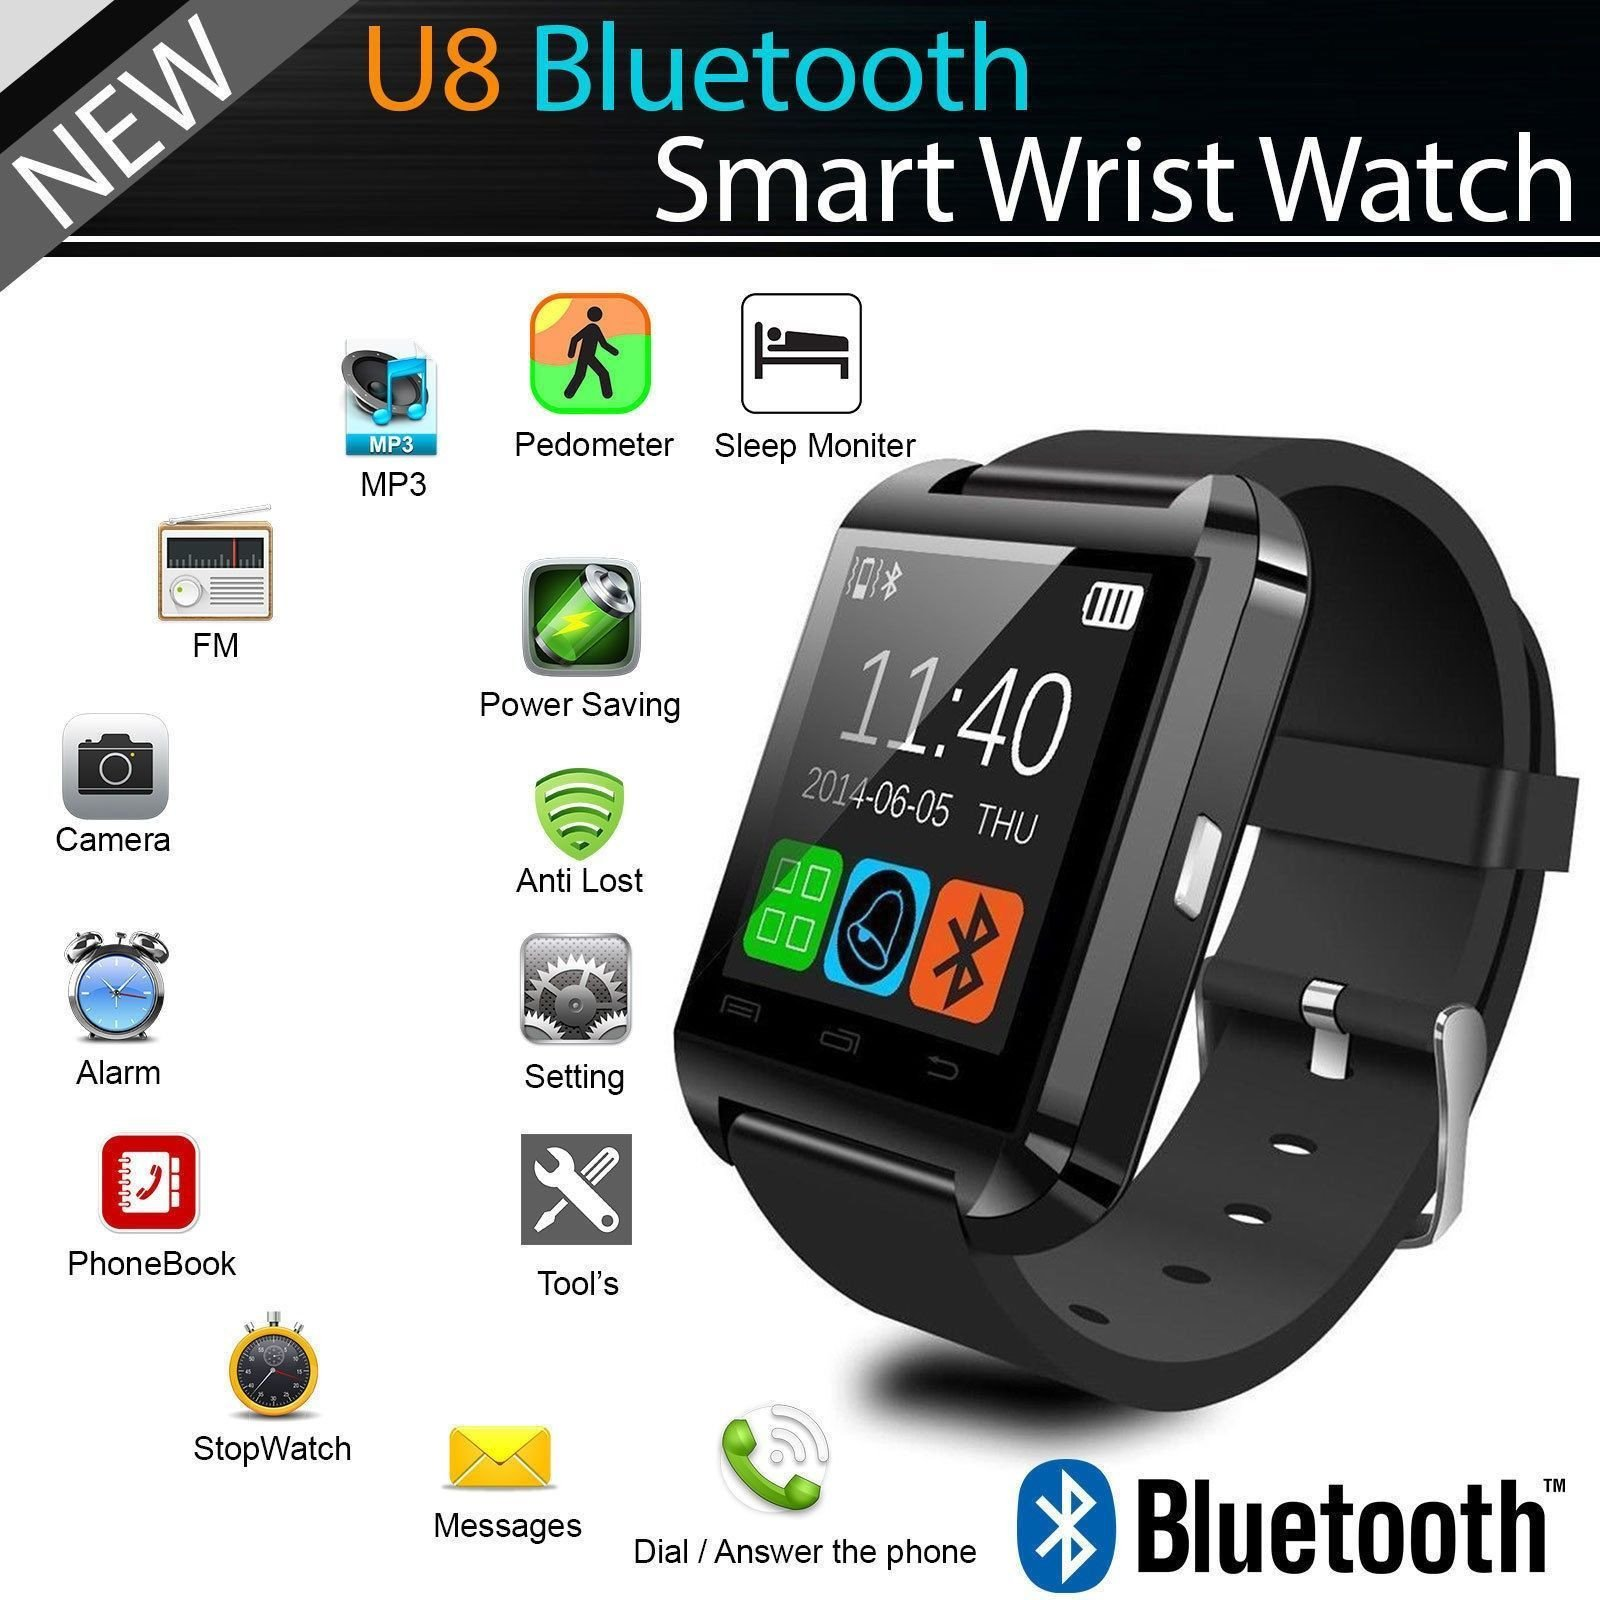 SmartWatch ® U8 Touchscreen 1.48in TFT LCD Bluetooth v3 + Activity Tracker + Music Controller ...